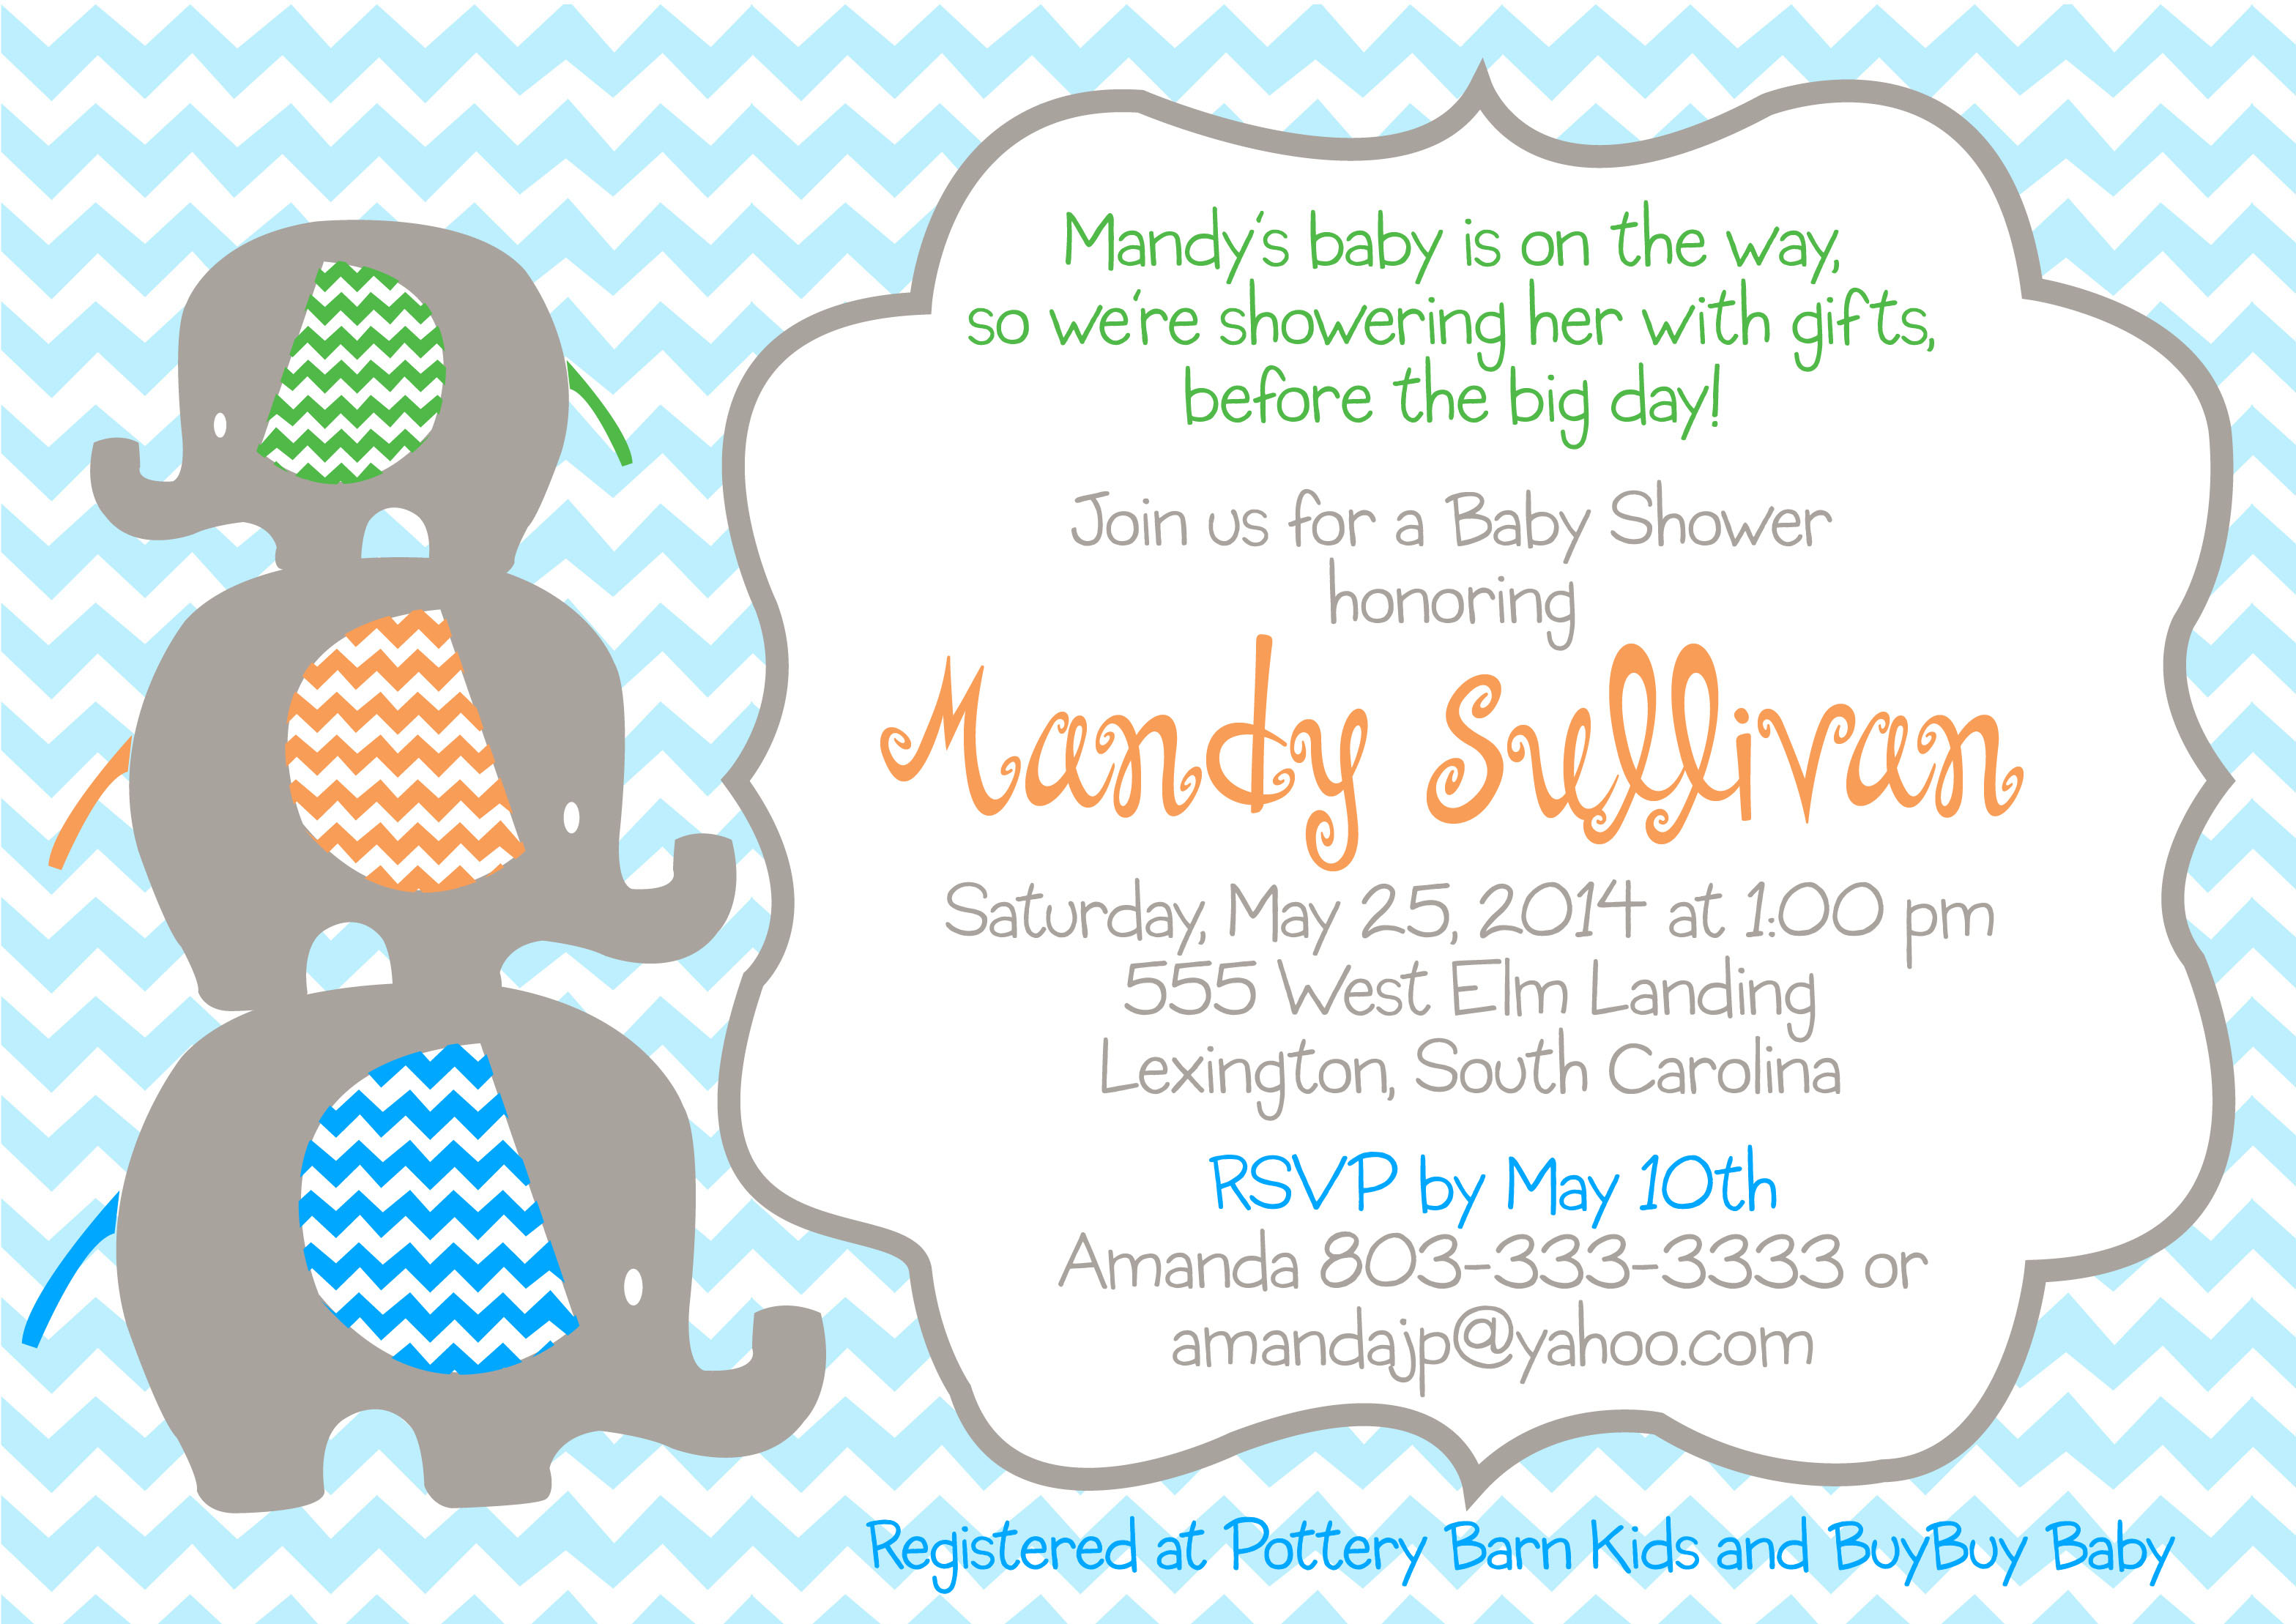 Full Size of Baby Shower:inspirational Elephant Baby Shower Invitations Photo Concepts Elephant Baby Shower Invitations Noah's Ark Baby Shower Baby Shower Party Favors Unique Baby Shower Gifts Baby Shower Flyer